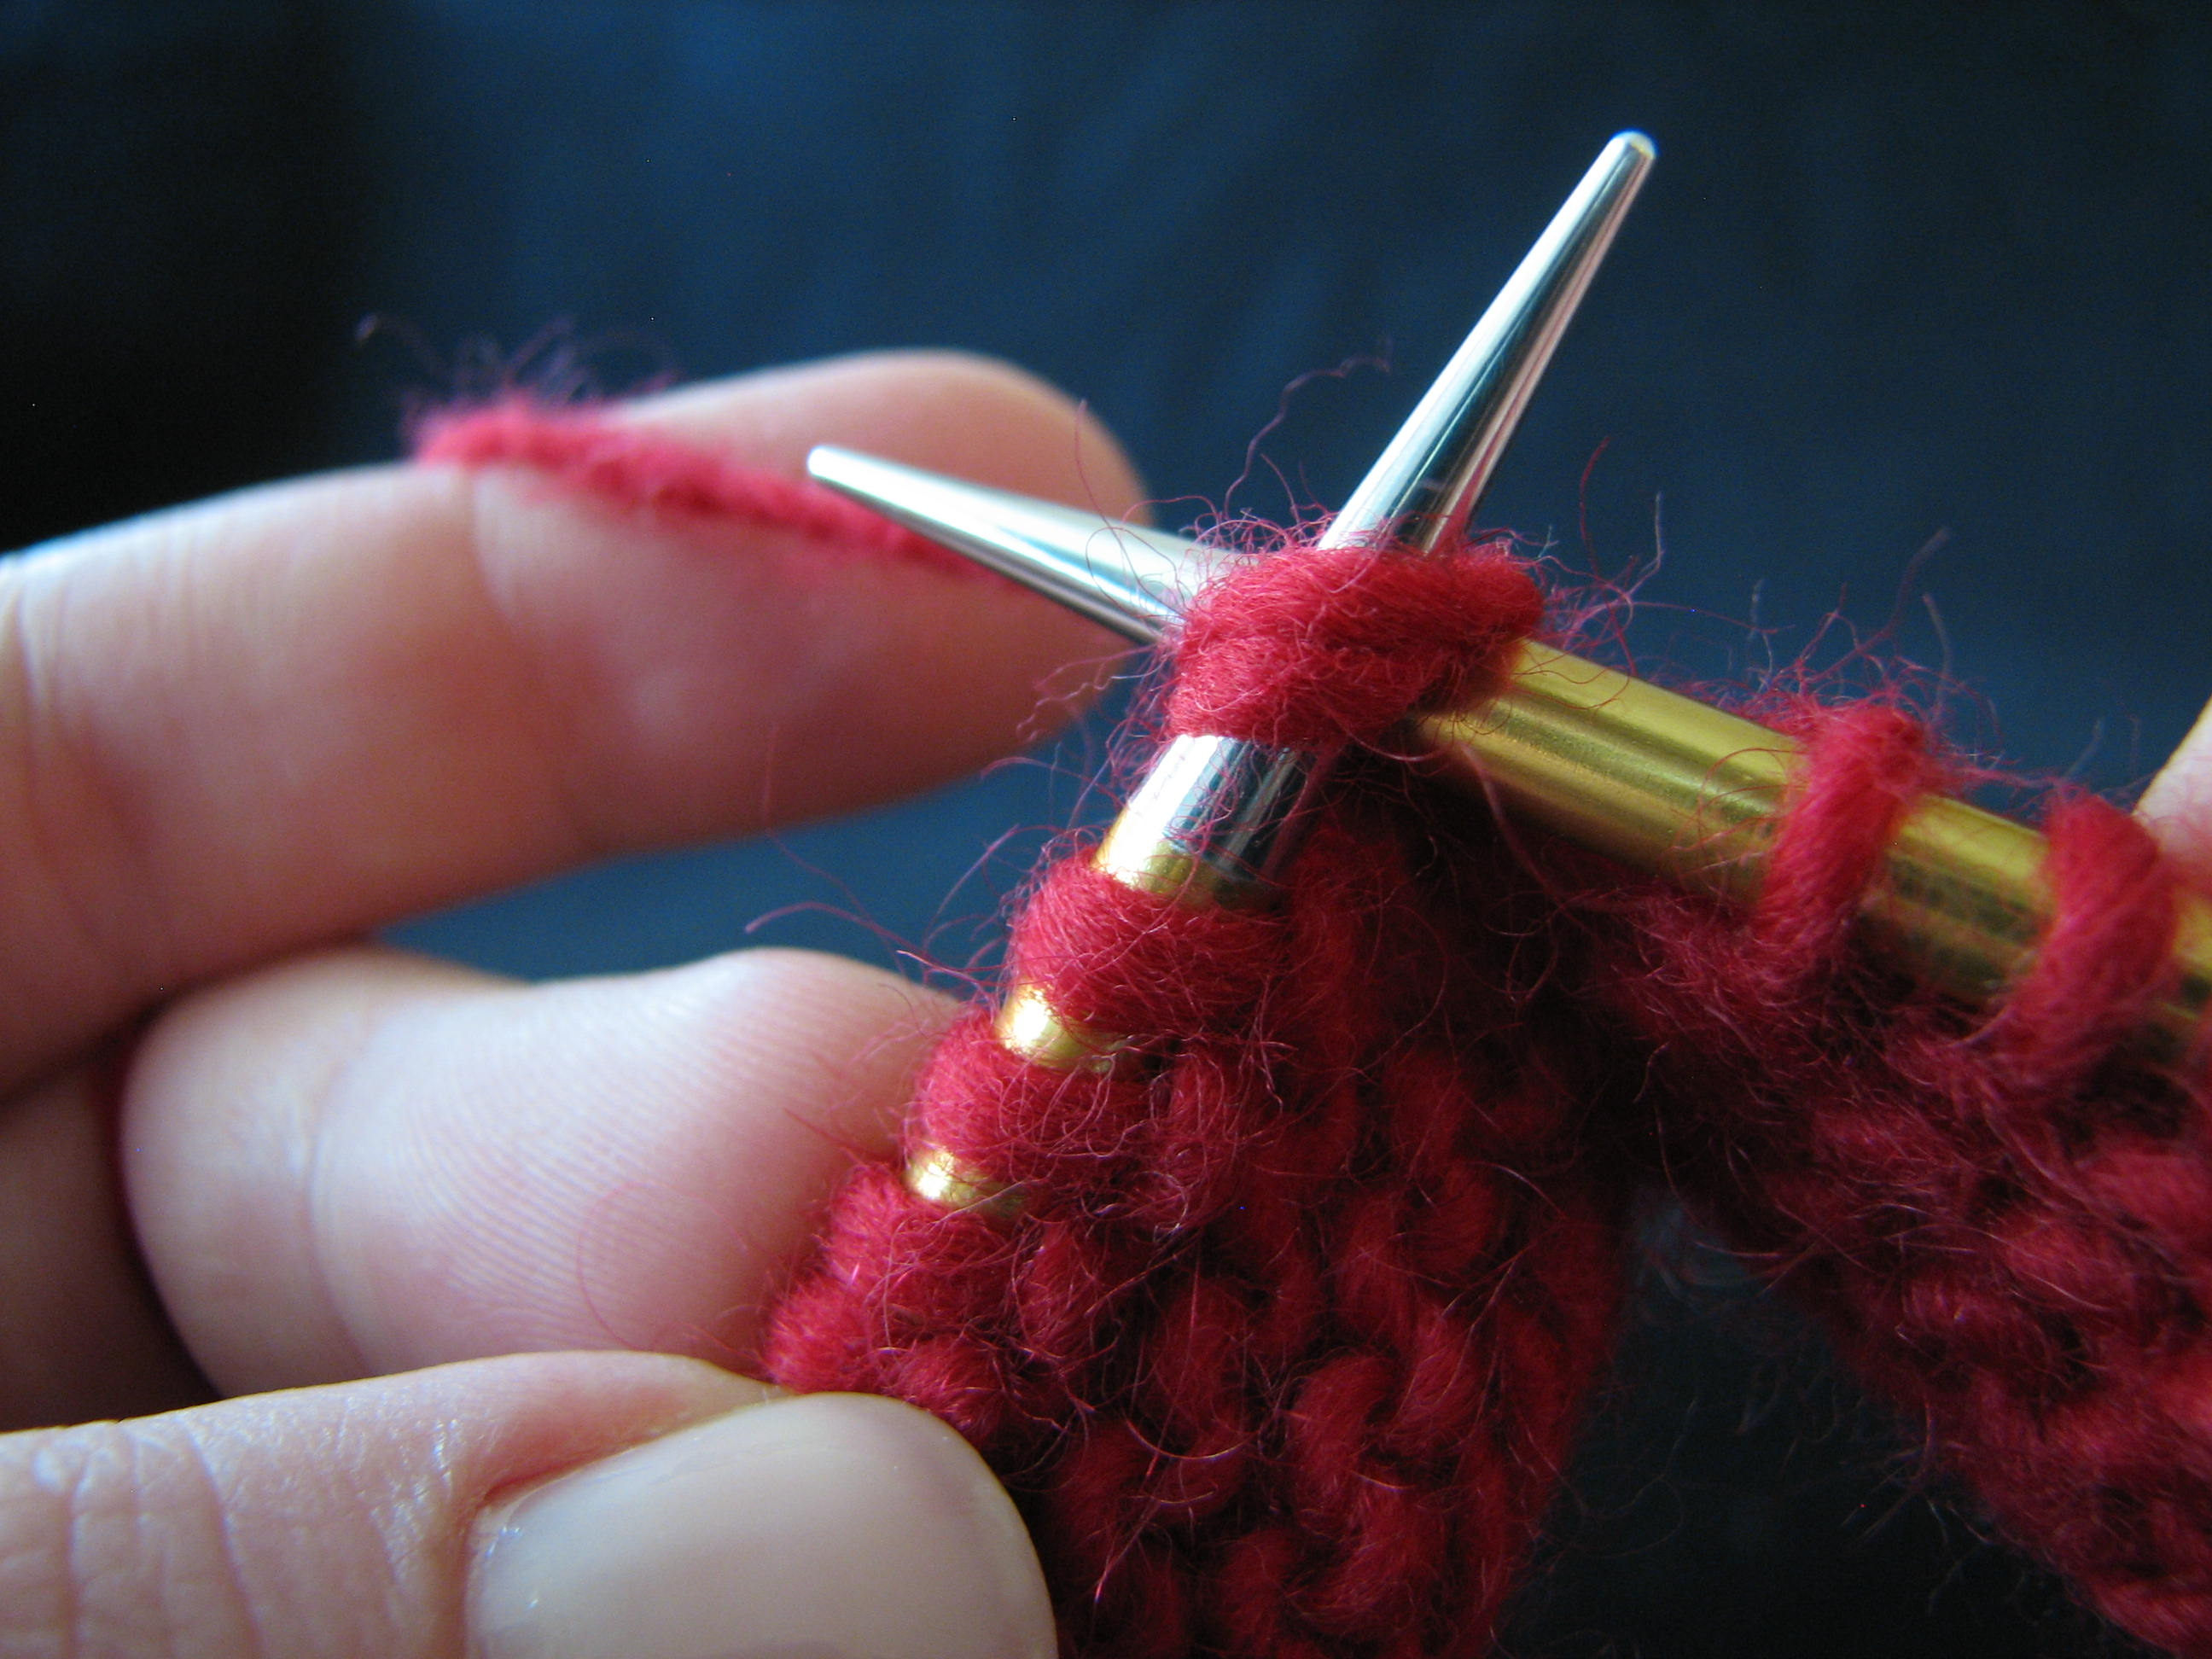 Knitting Speed Stitches Per Minute : How to Knit Faster - Fast Knitting KnitFreedom